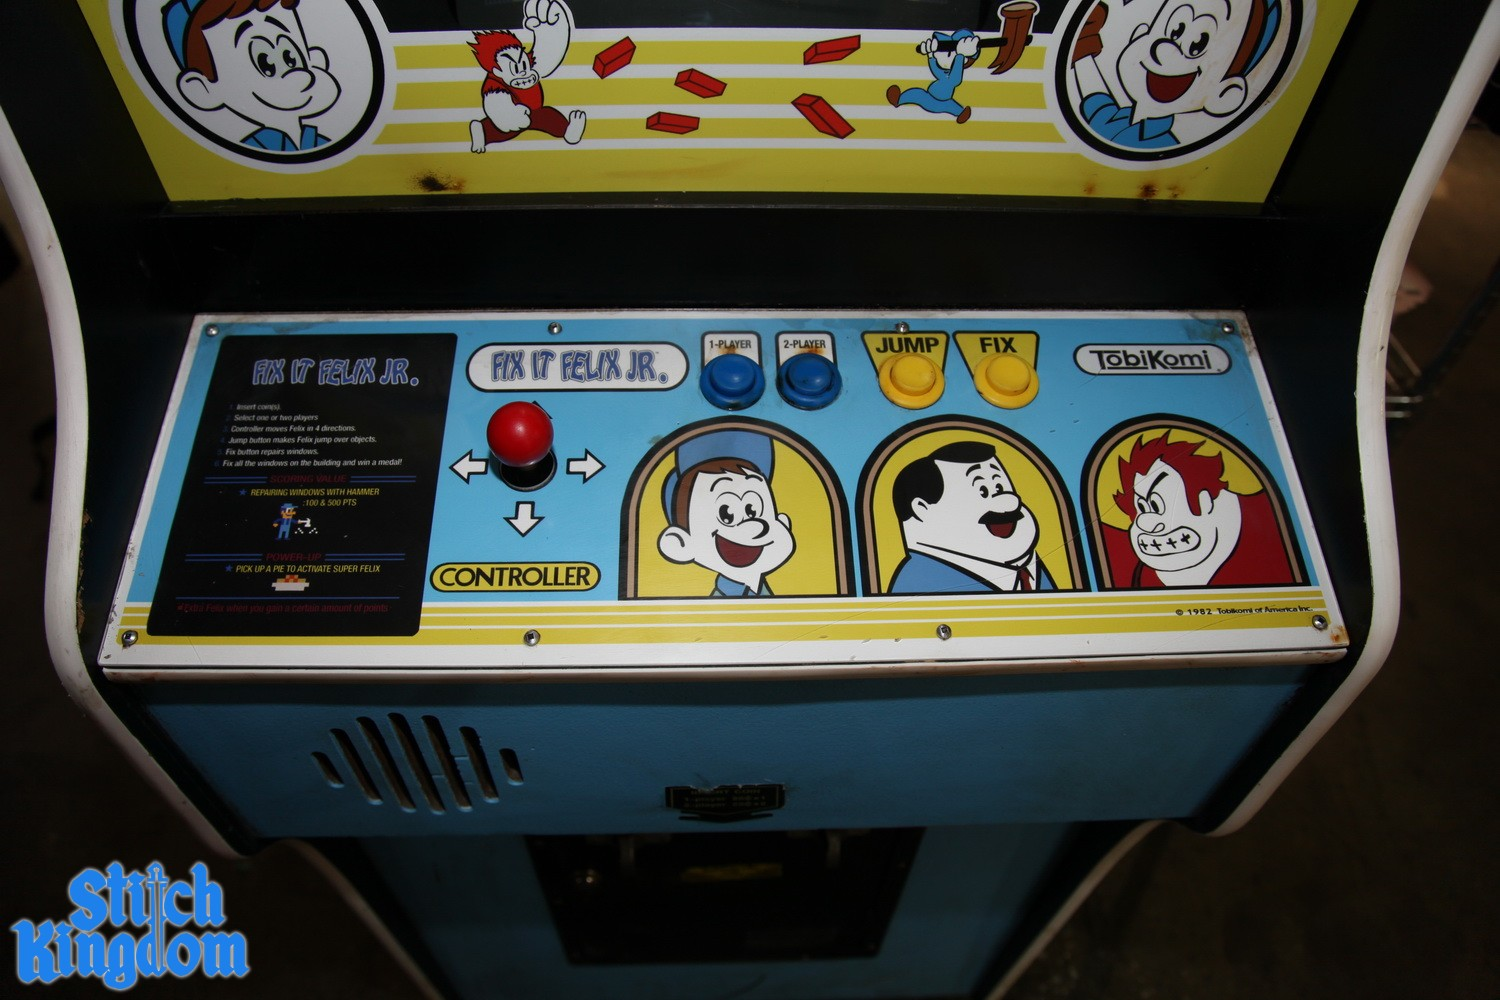 Fix It Felix Jr Arcade Machine The controls of Fix-It Felix